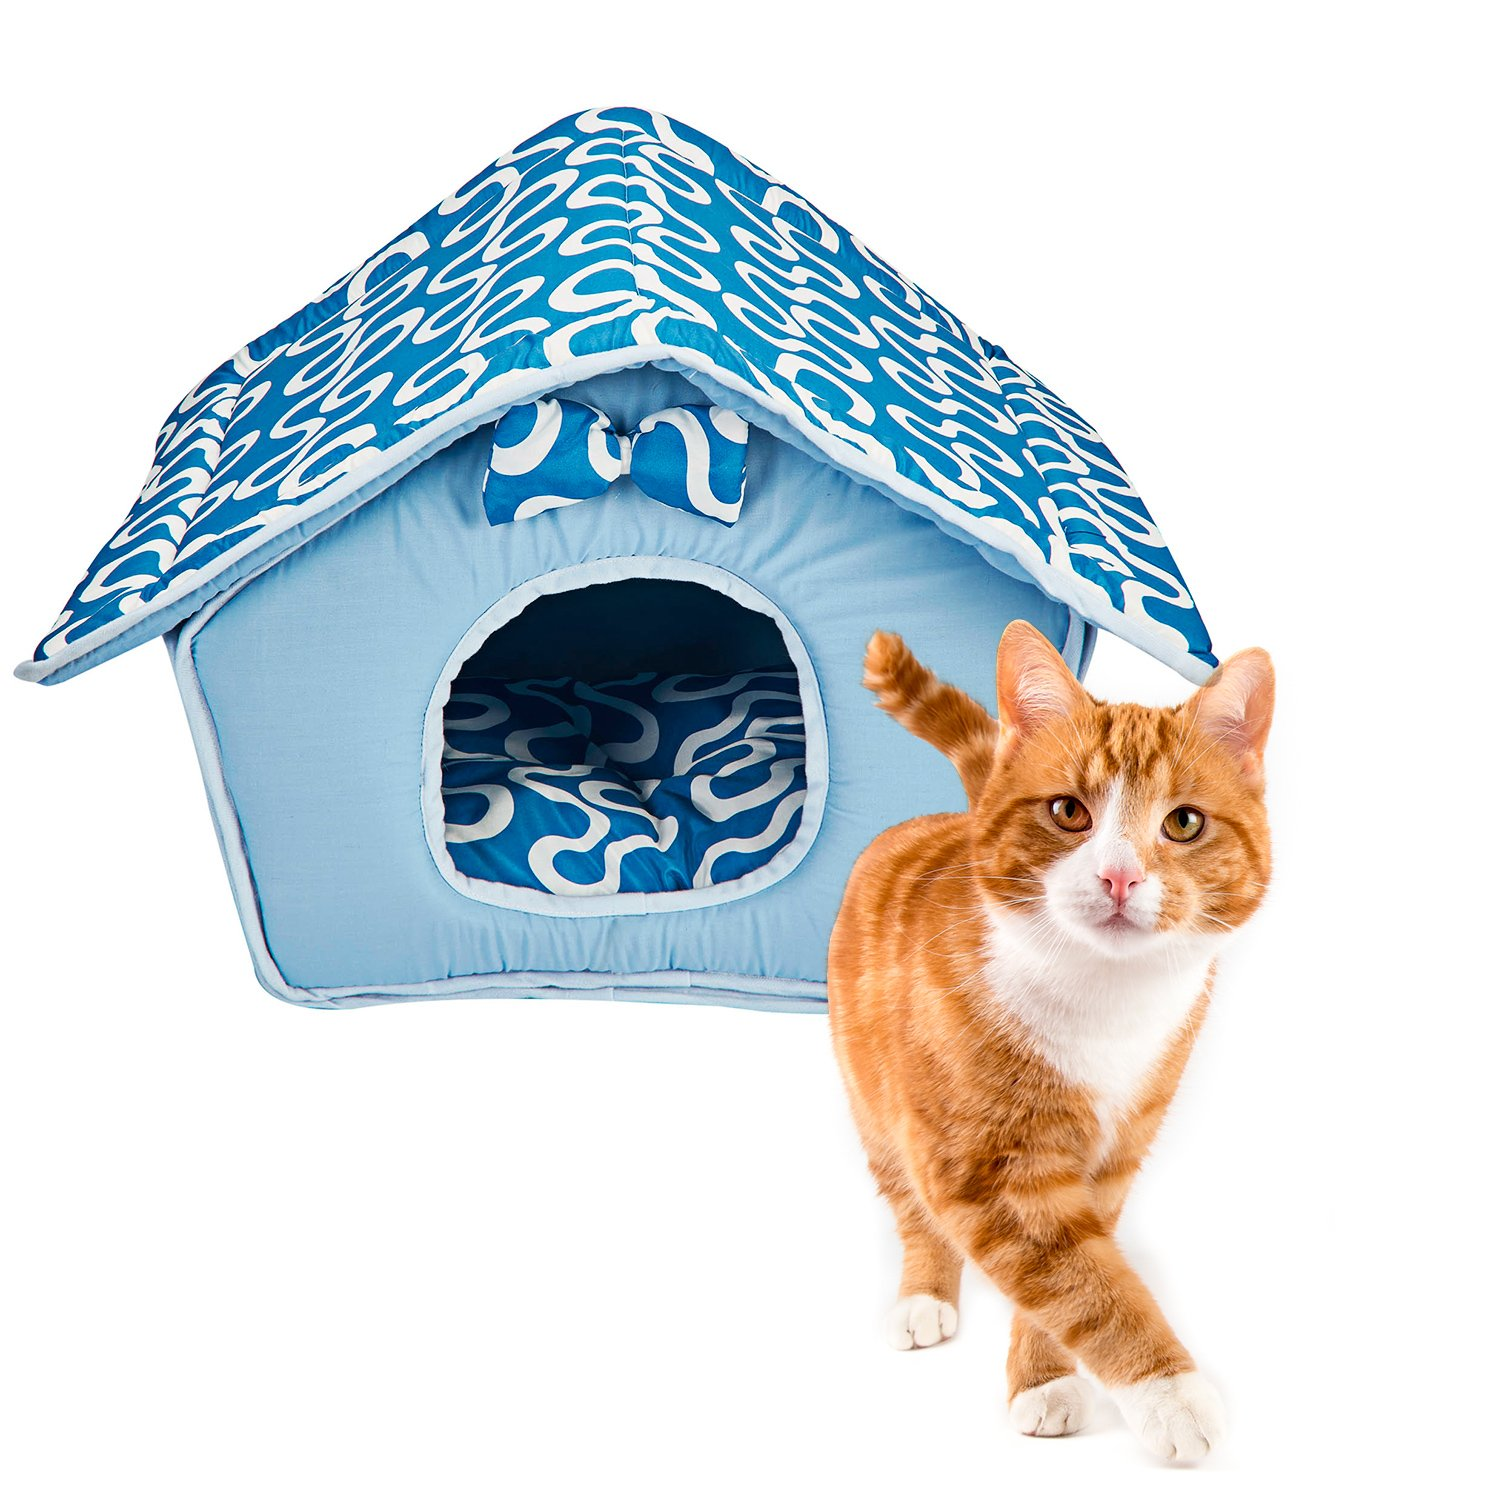 Deluxe Memory Foam Indoor House for Cats and Dogs and Cats (Blue) Animals Favorite